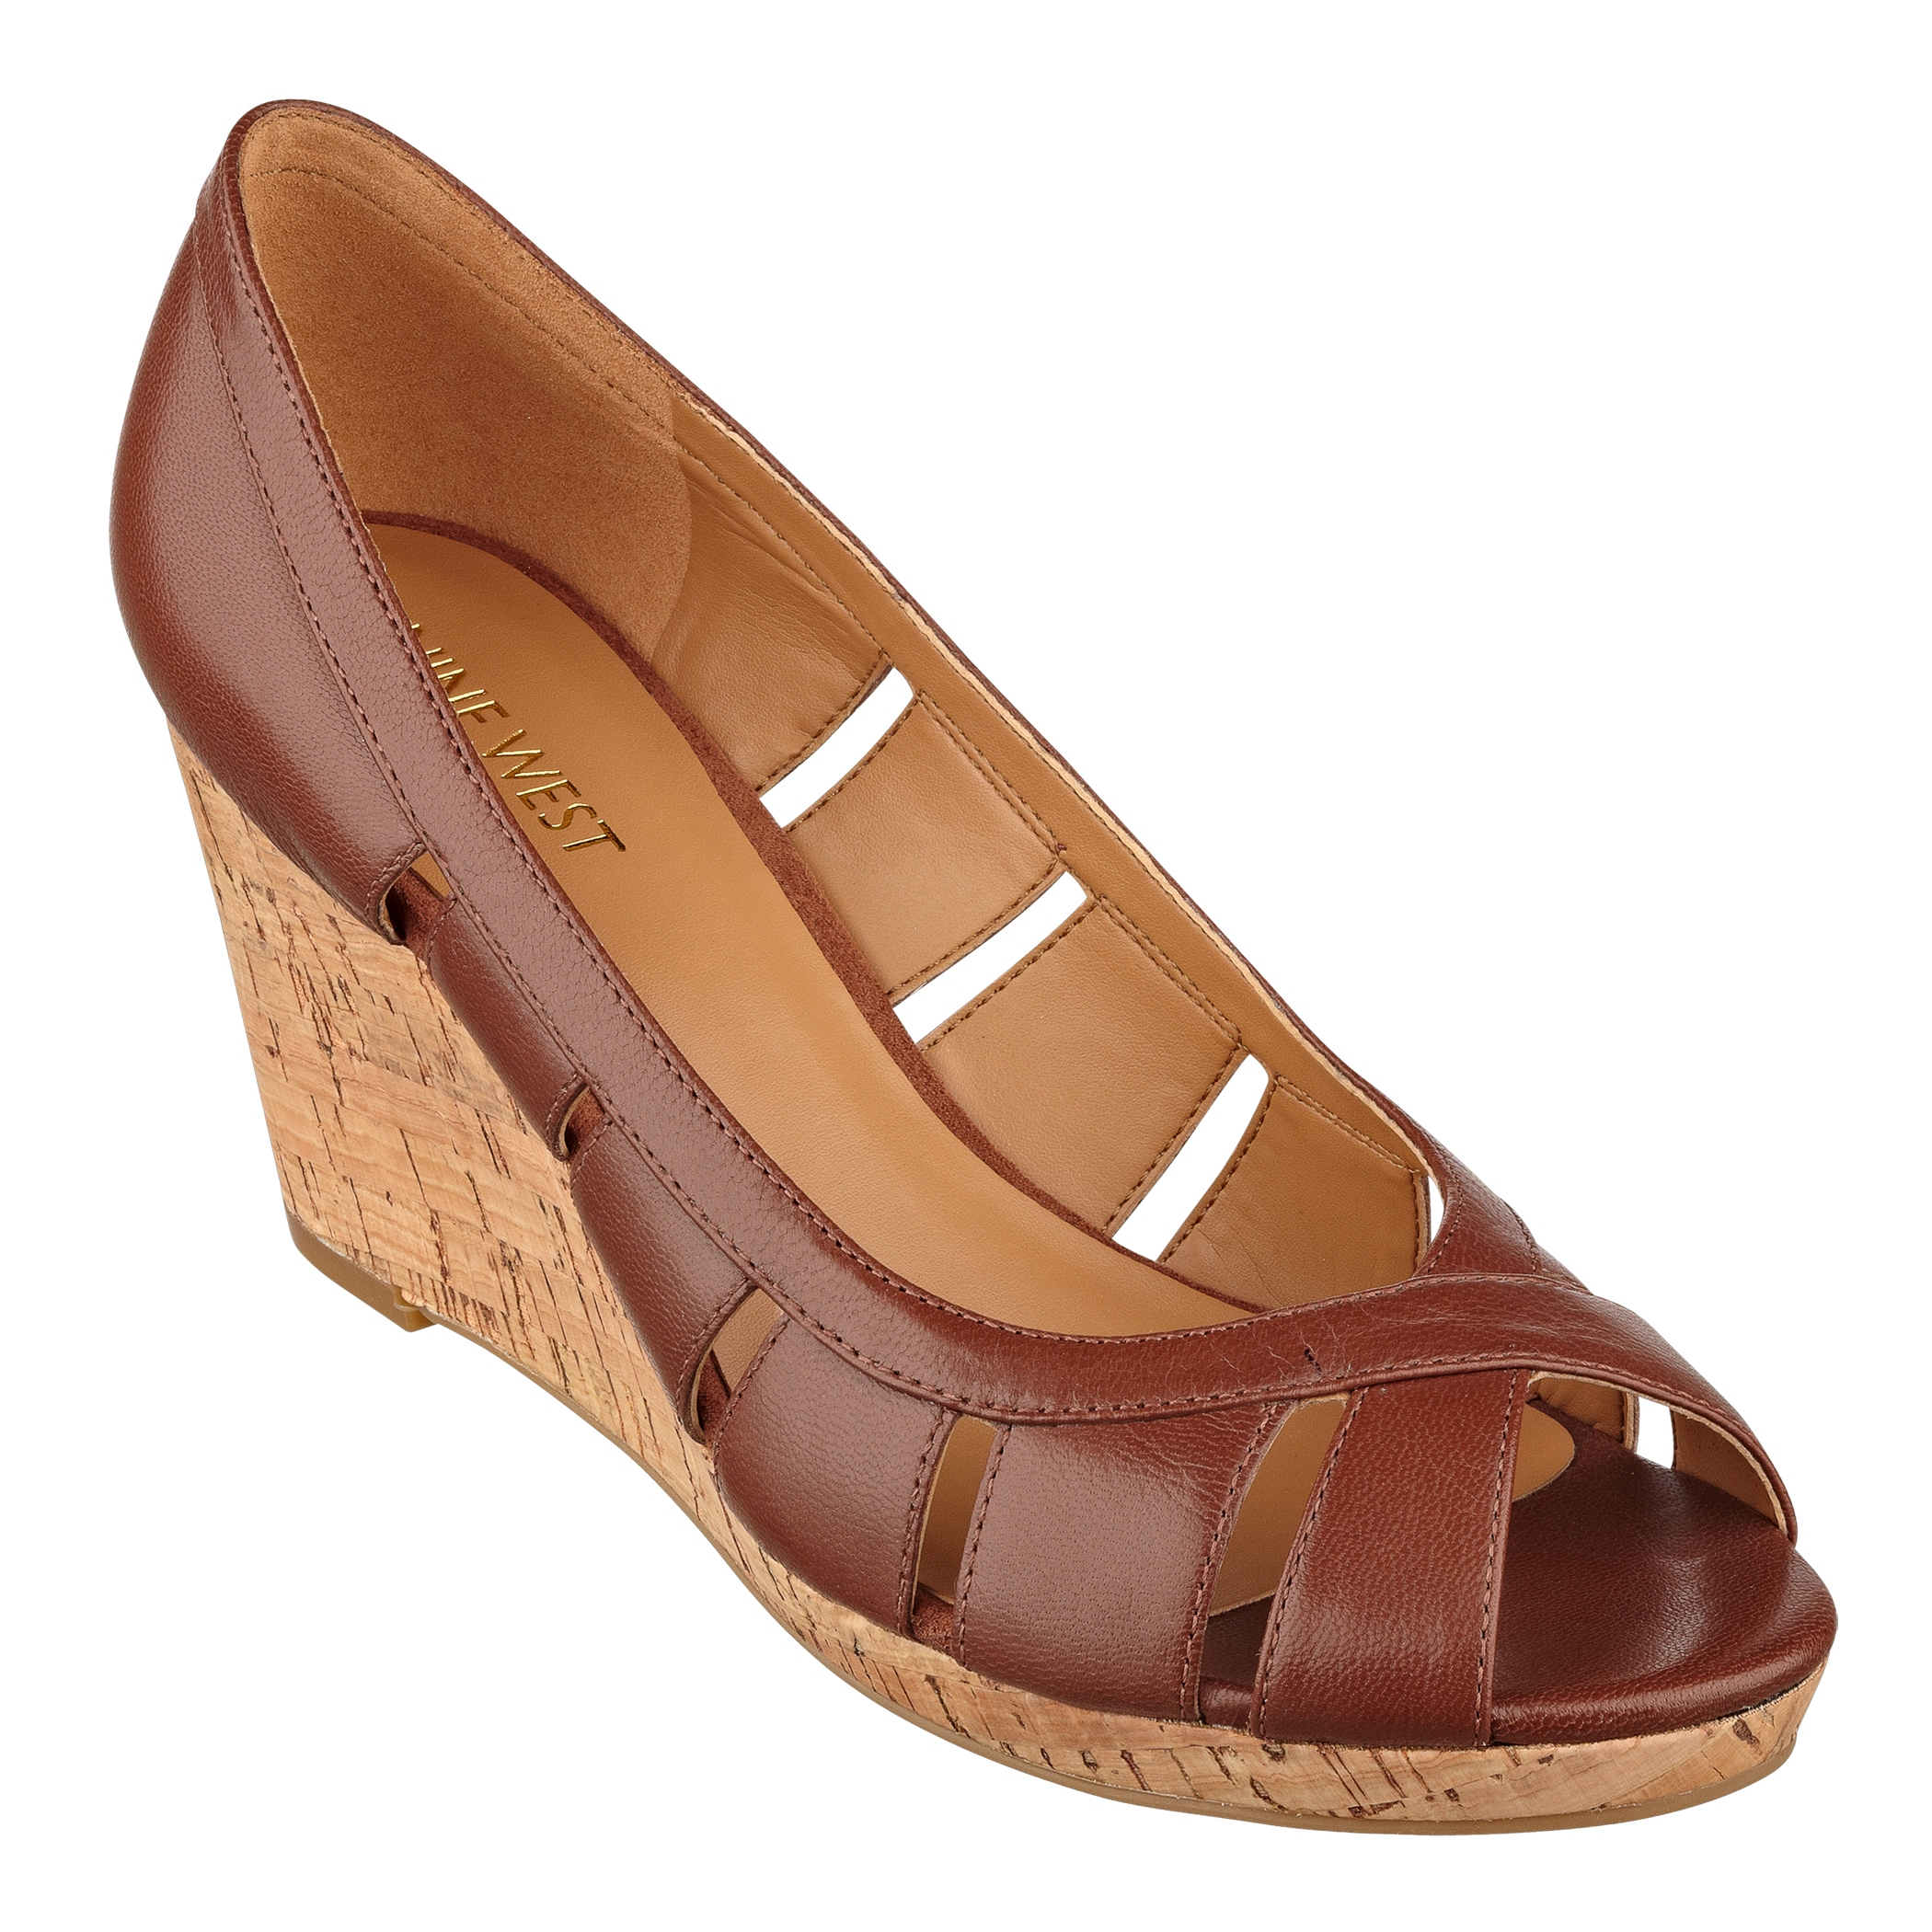 NAOT Women's Lena Wedge Sandal,Mine Brown Leather/Brown Shimmer Nubuck,35 EU/4 M US The Naot Lena is a unique slide sandal with leather lace accents. This style has stretch at the instep for adjustability and contrasting leathers.